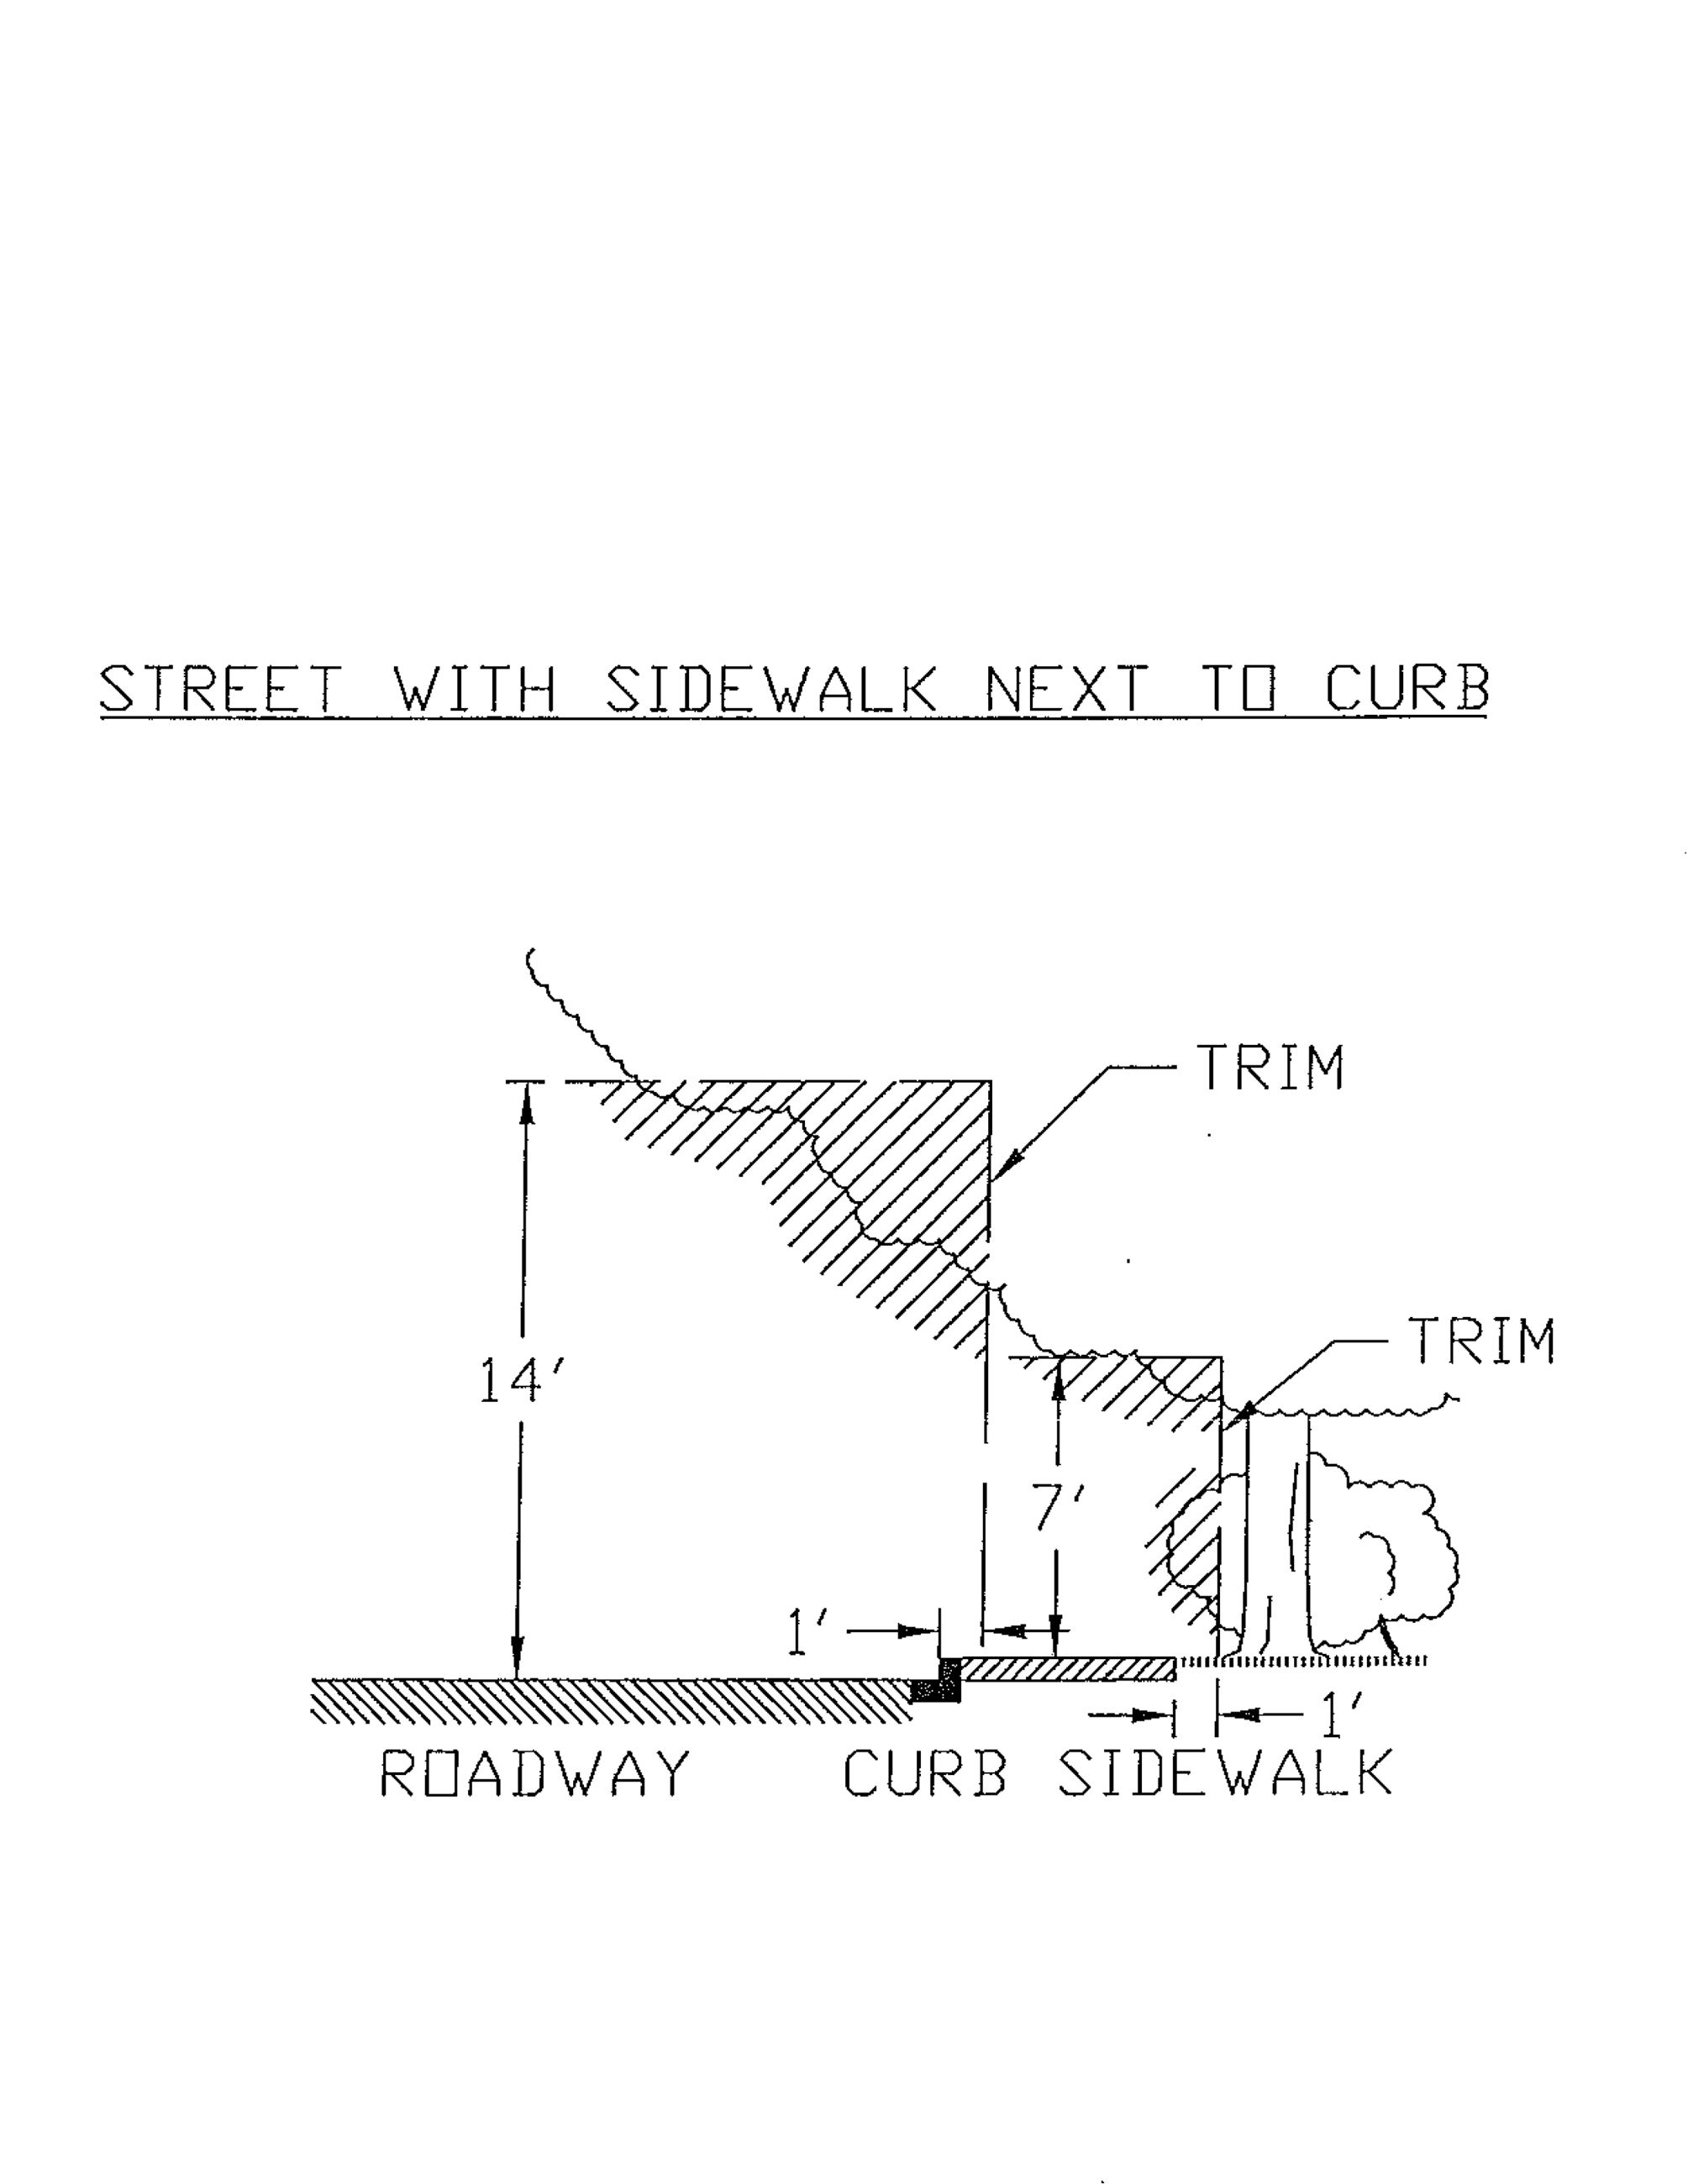 Street with Sidewalk next to Curb